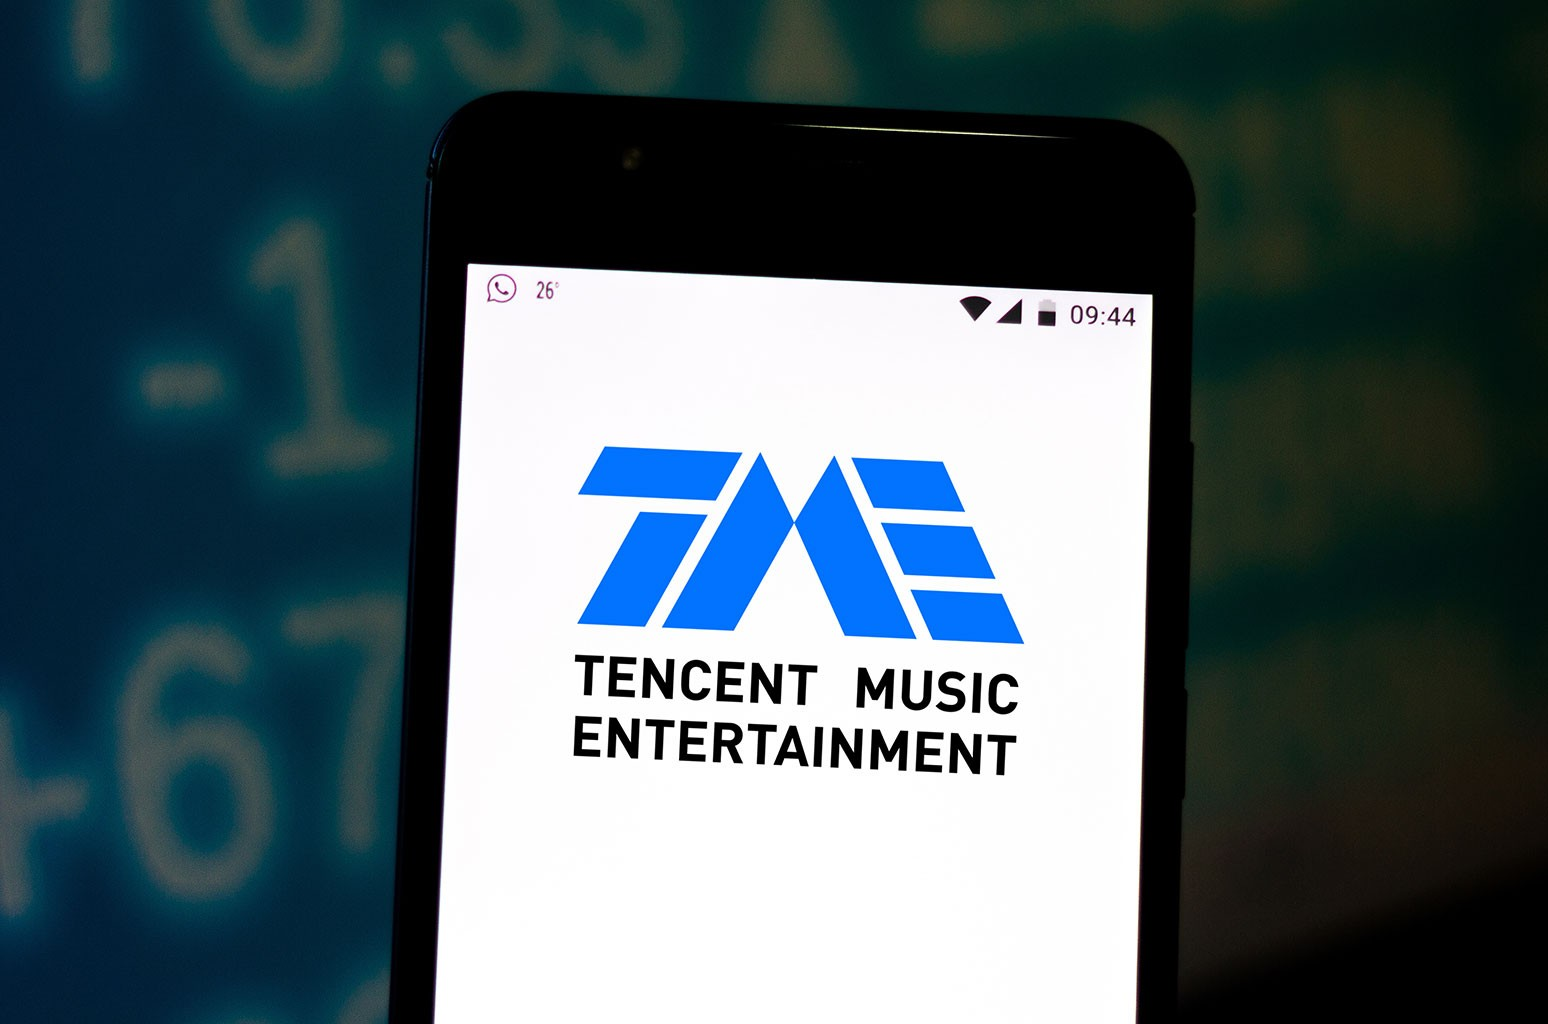 Tencent Music Entertainment